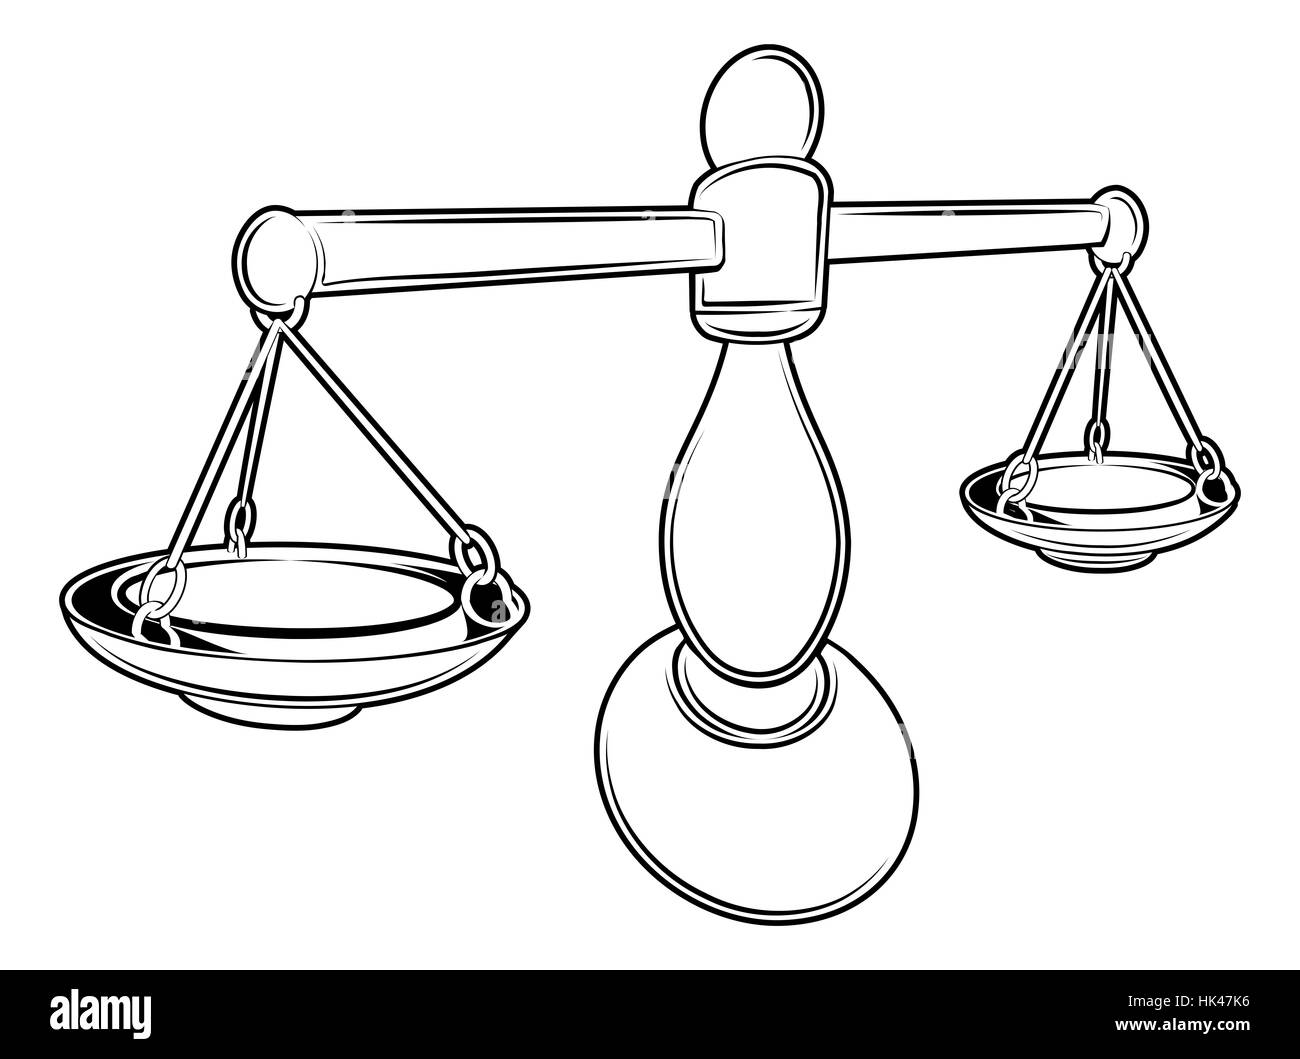 An illustration of a stylised black balance scales perhaps a scales tattoo - Stock Image